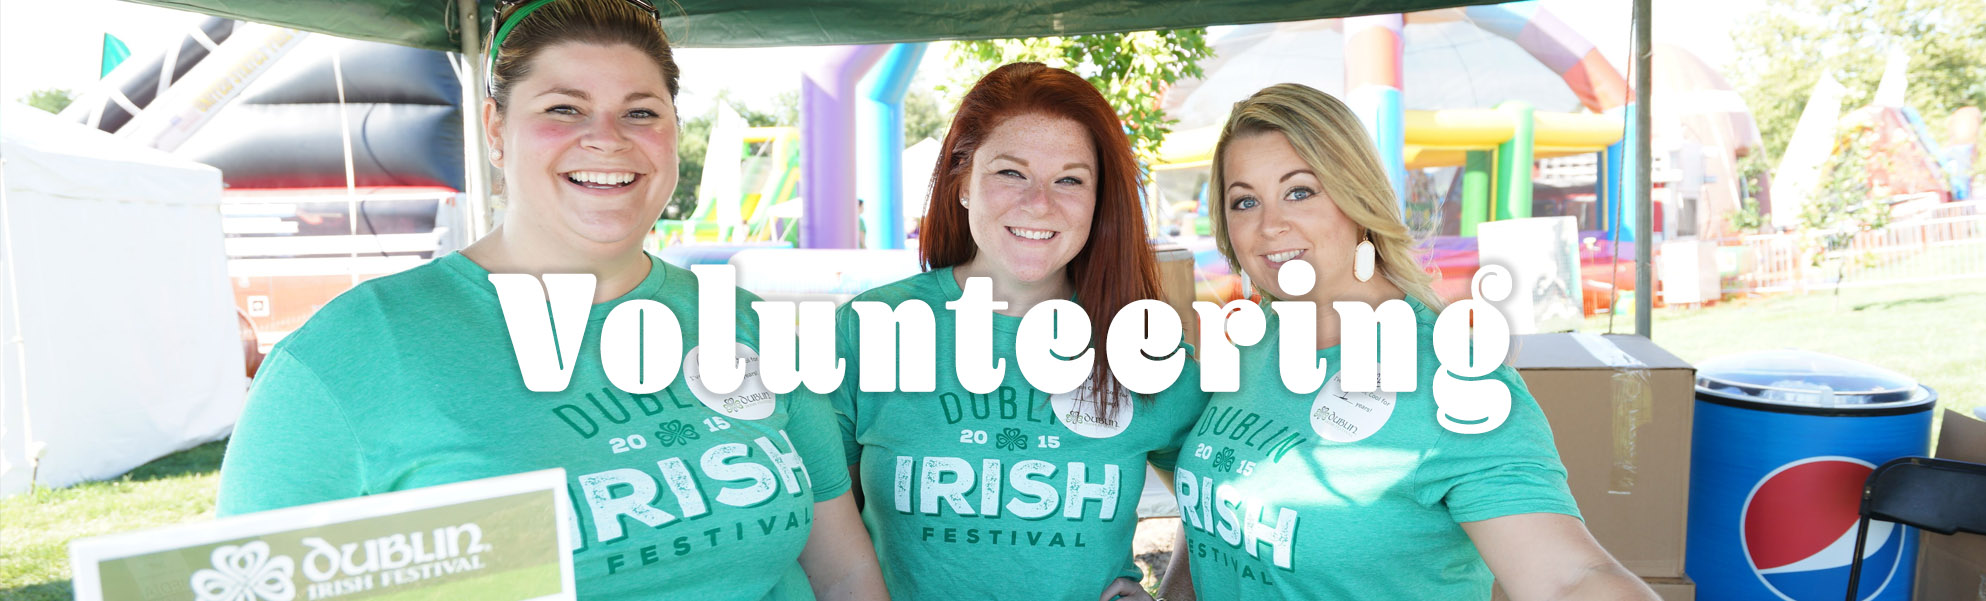 volunteering-header-2019